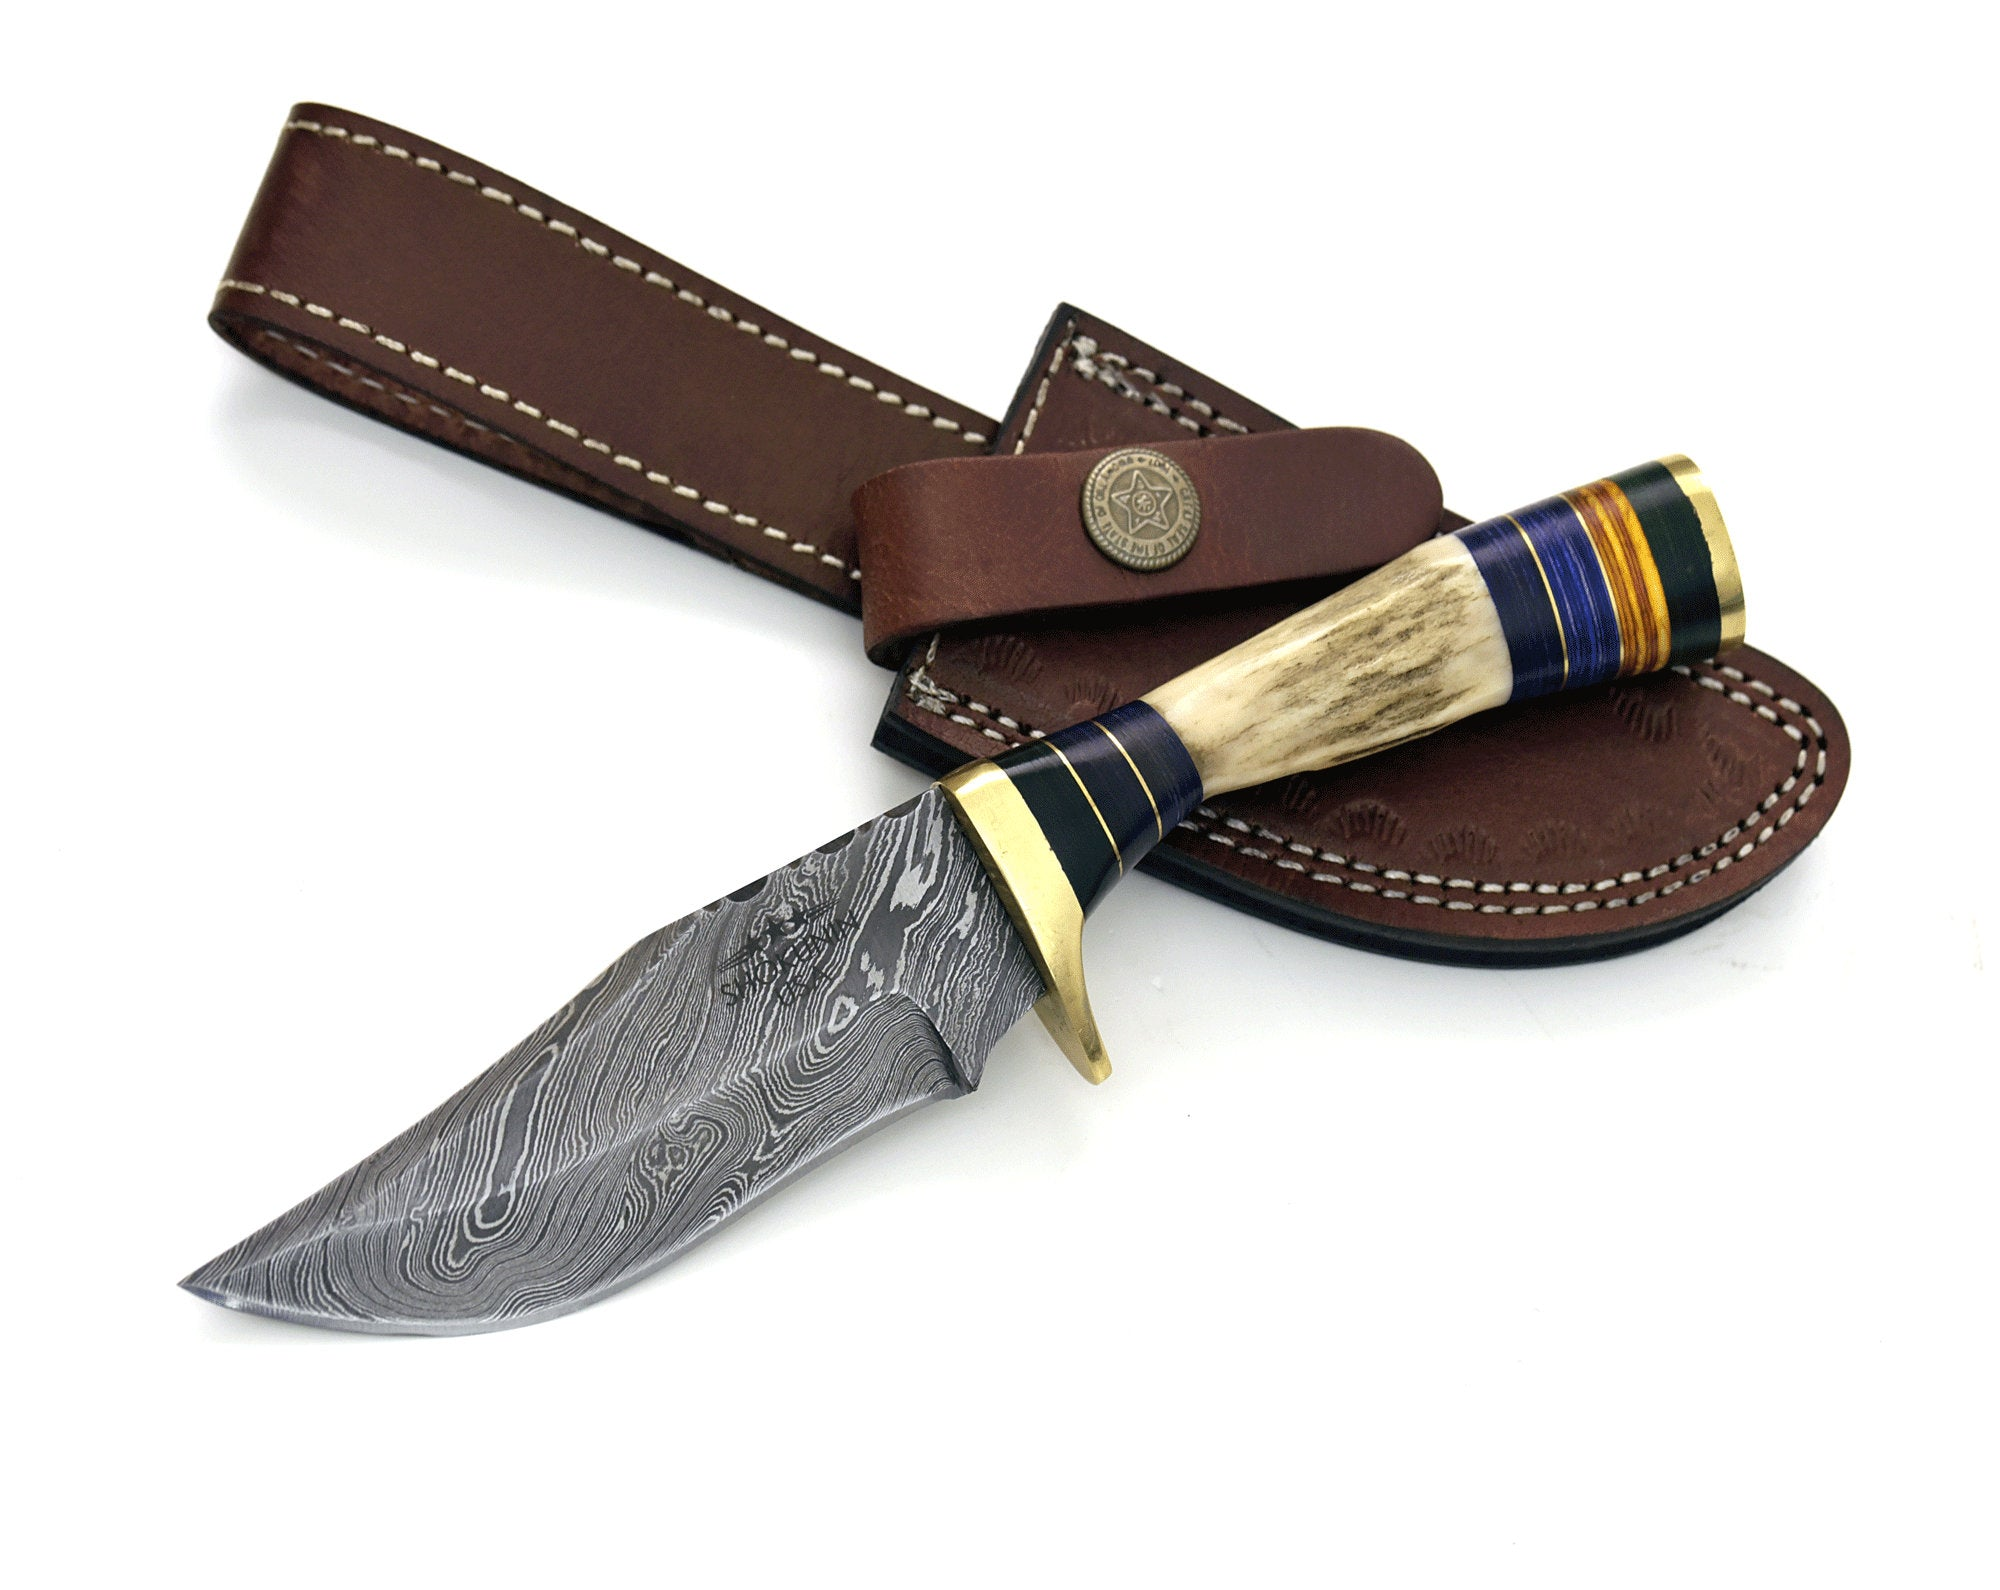 "8.0"" Custom Damascus knife, Stag handle, Damascus steel utility knife tactical camping hunting knife with hand stitched leather sheath - SHOKUNIN USA"